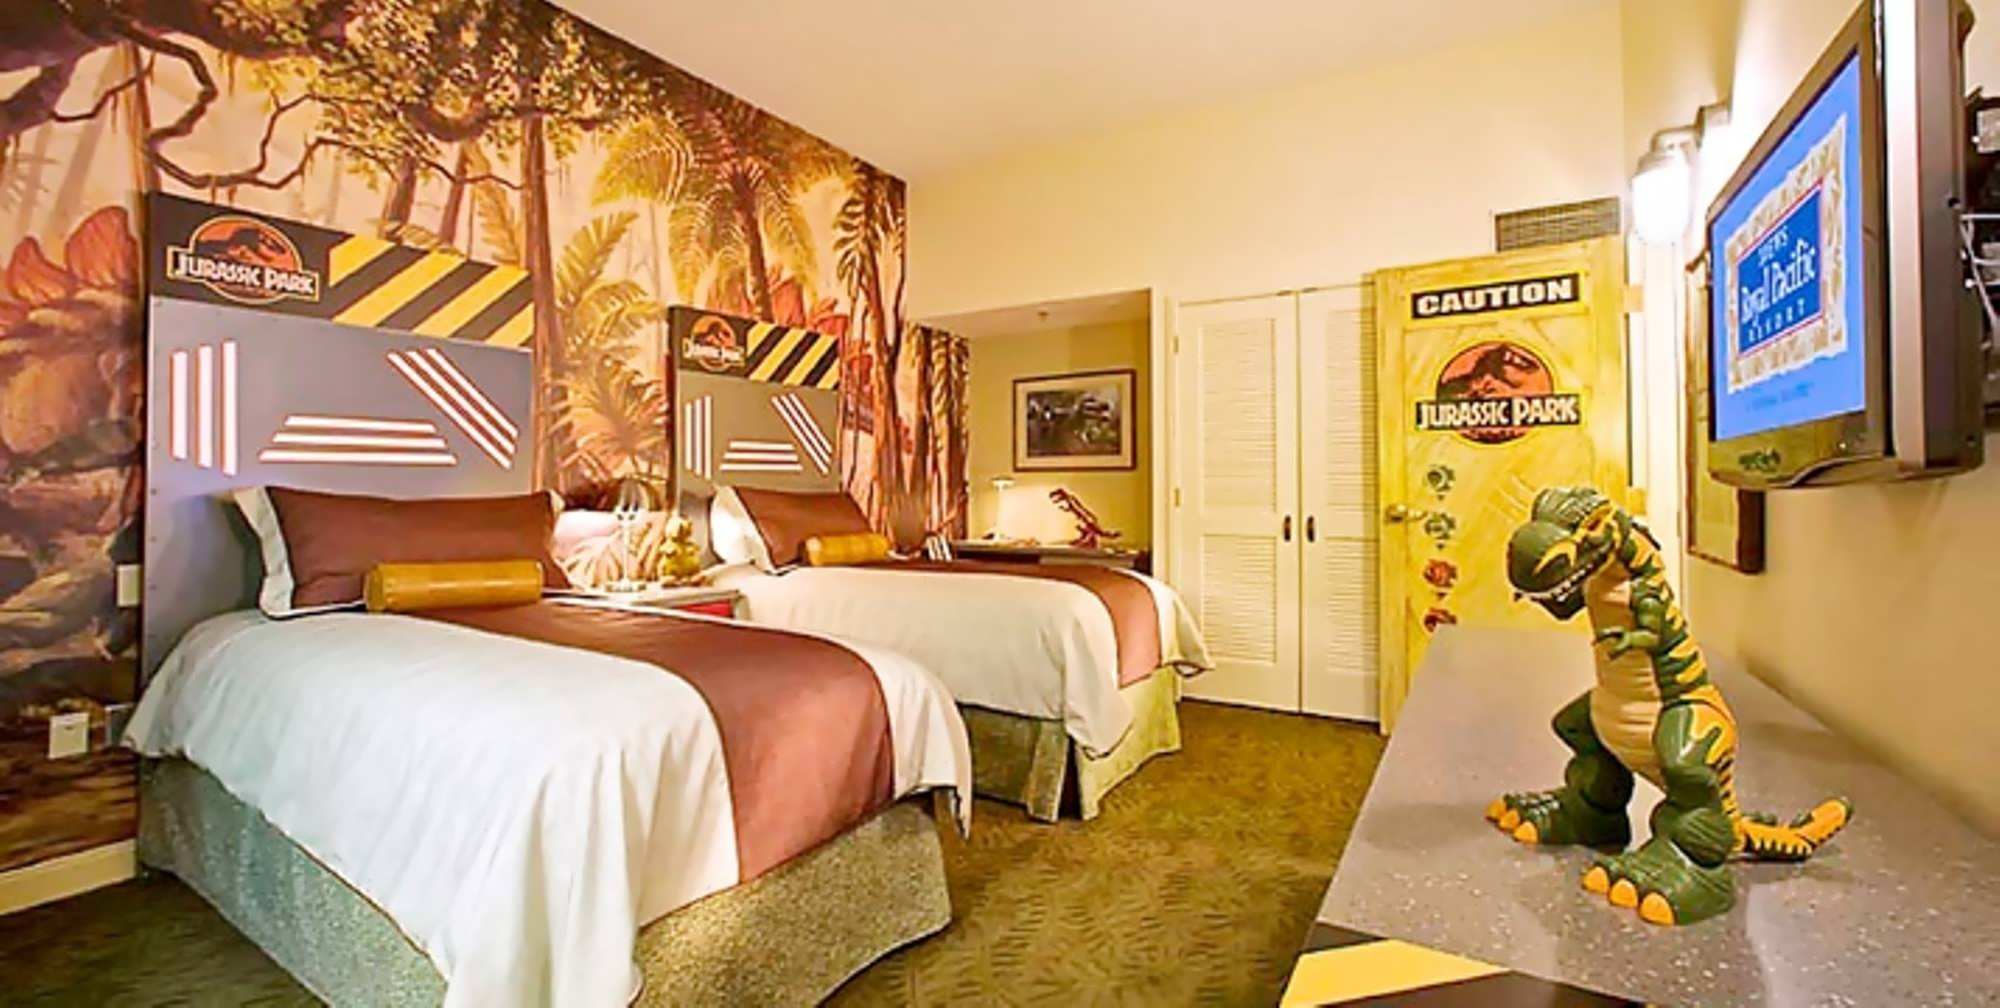 Jurassic Park kids suite at Royal Pacific Resort